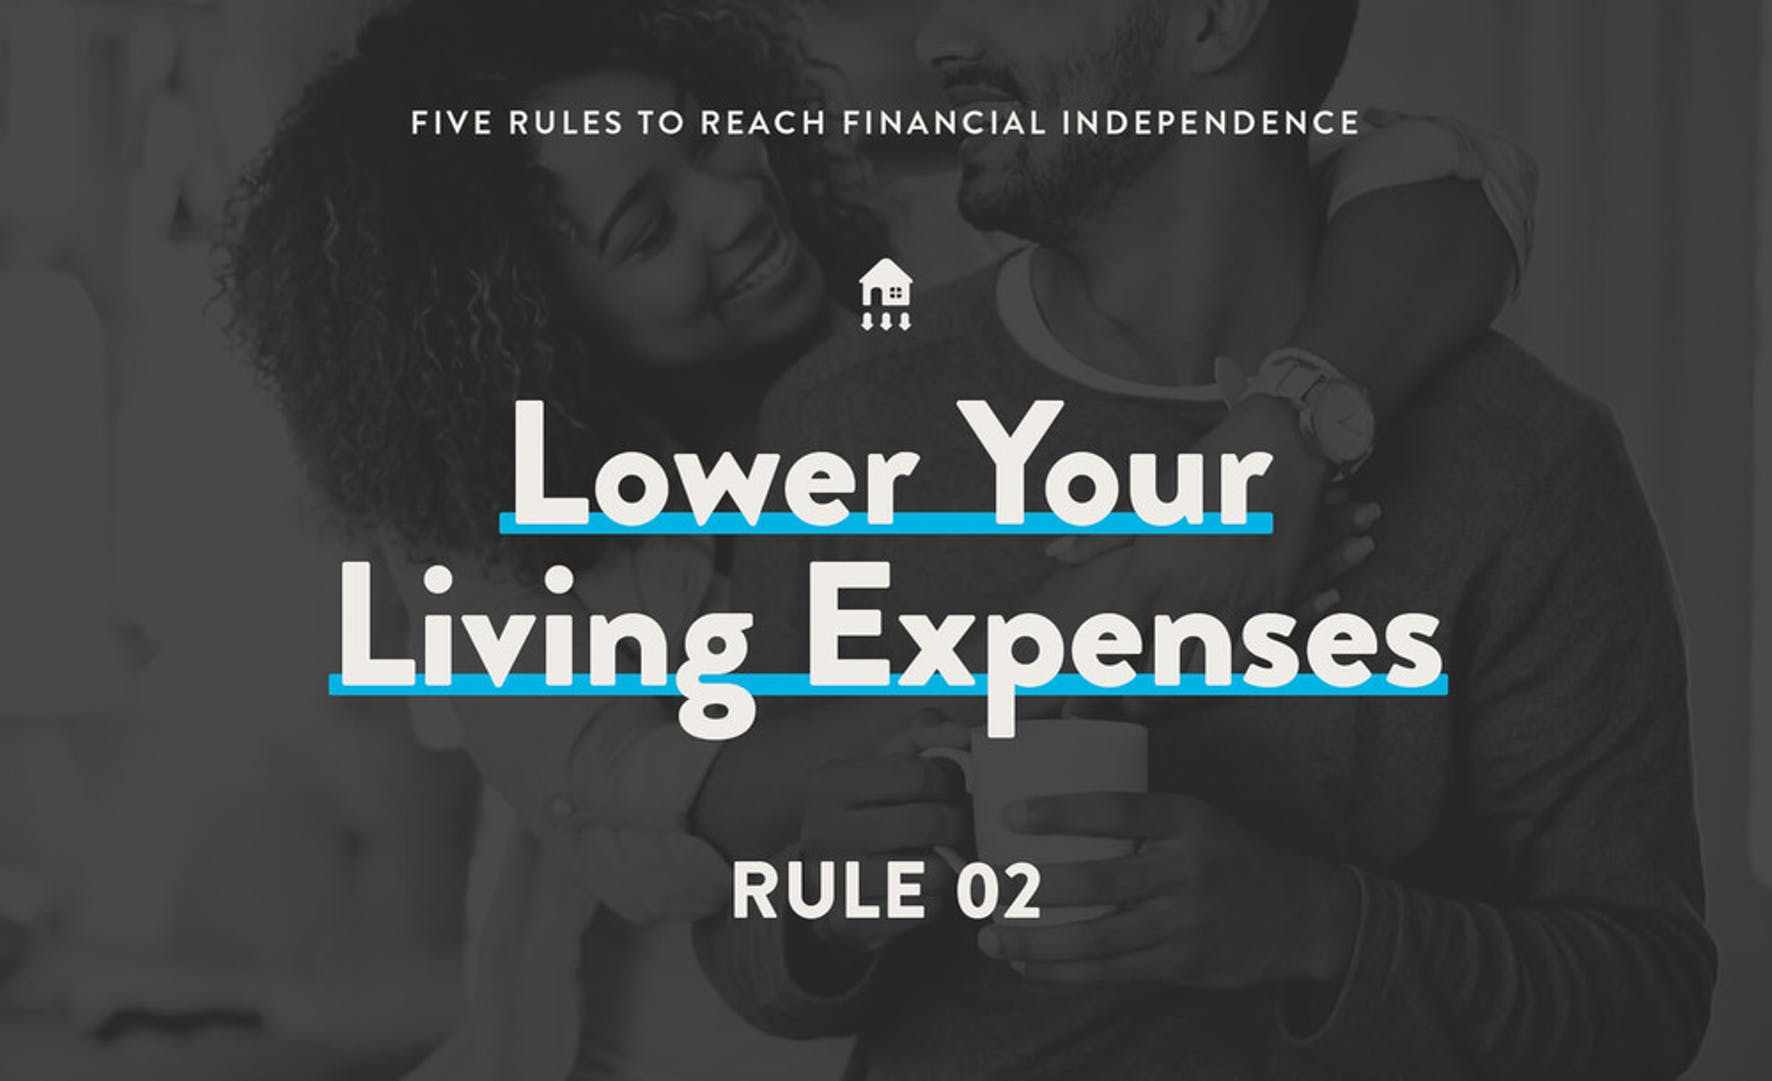 Lower your living expenses to be financially independent